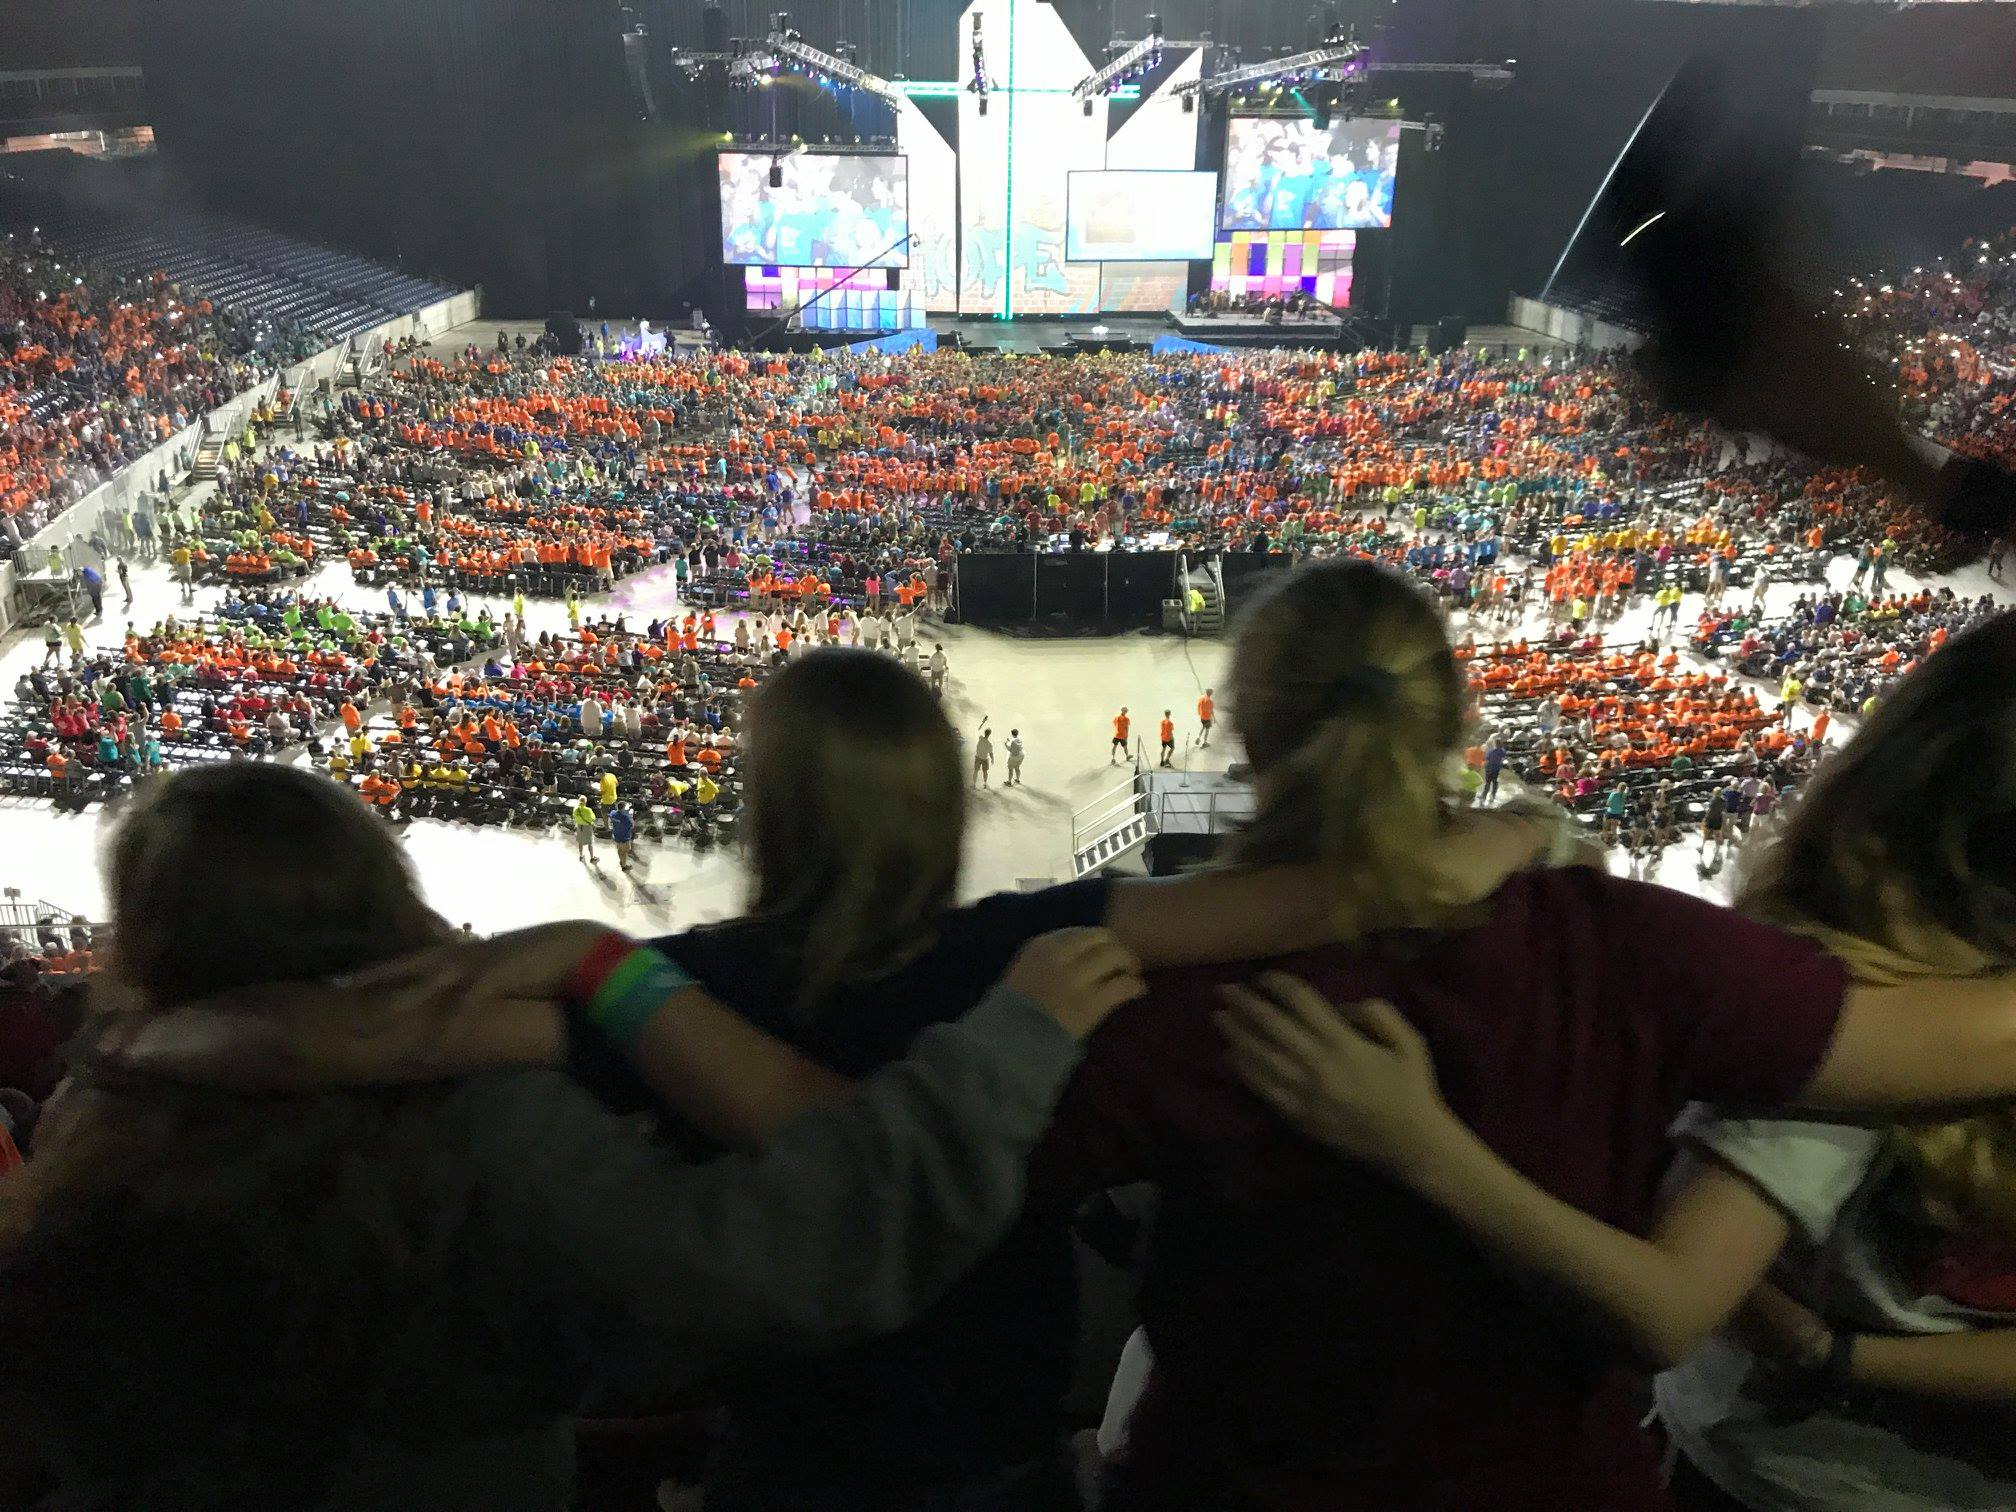 Our Youth spending time at the Mass Gathering.